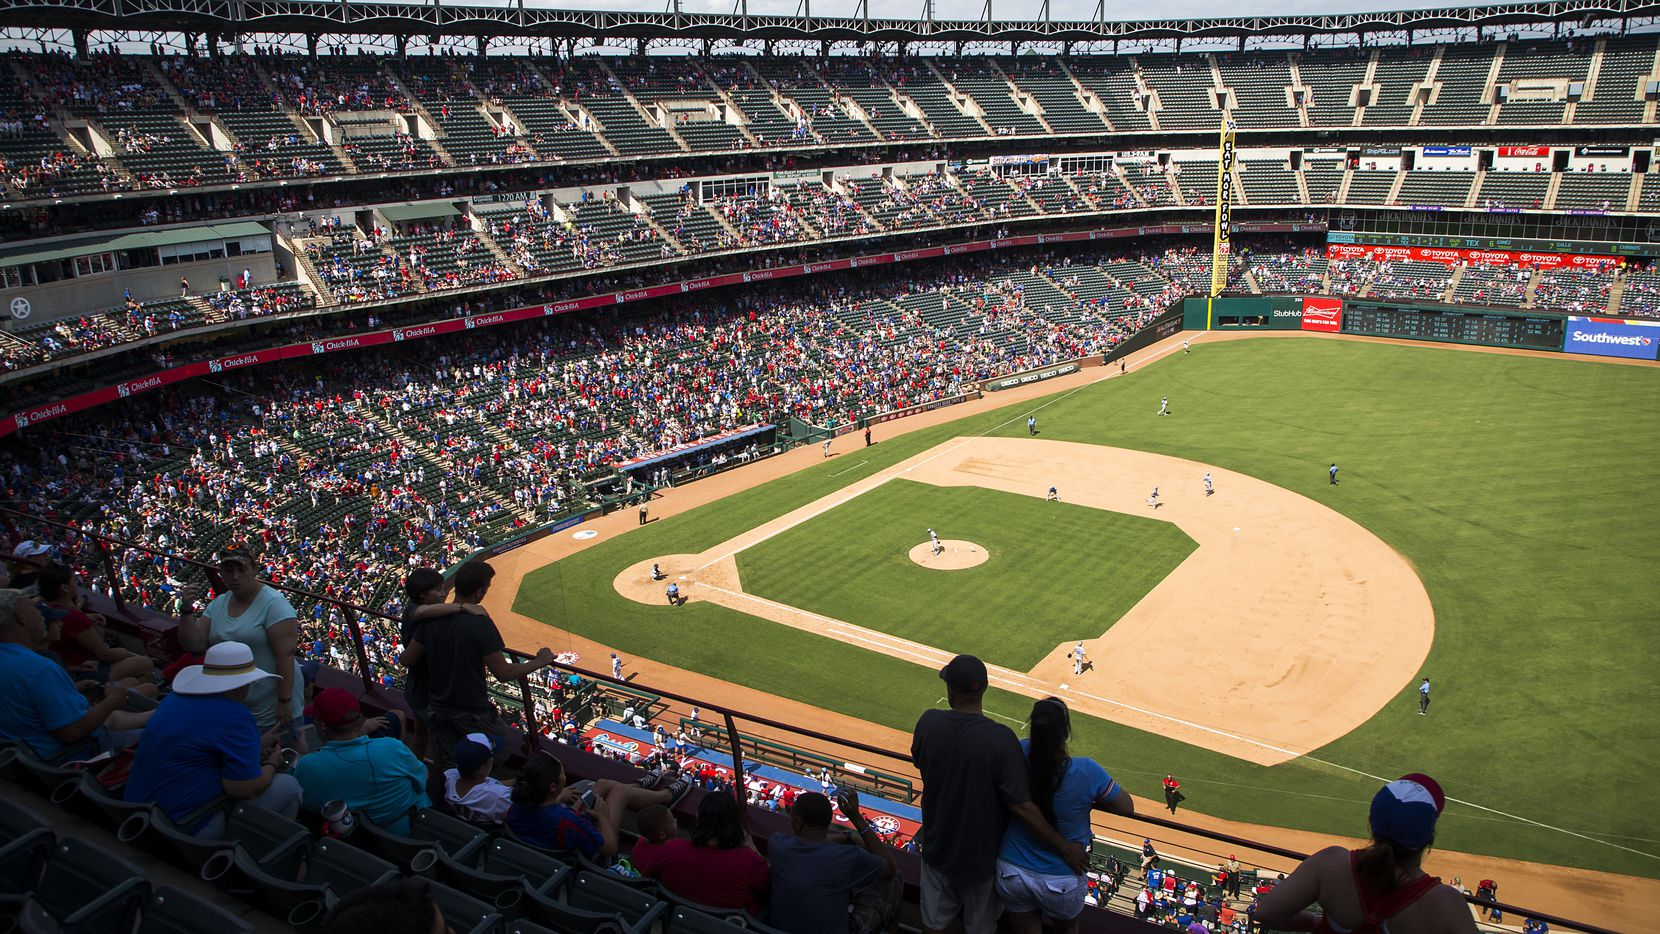 File photo of Globe Life Park in Arlington from 2017. (Smiley N. Pool/The Dallas Morning News)